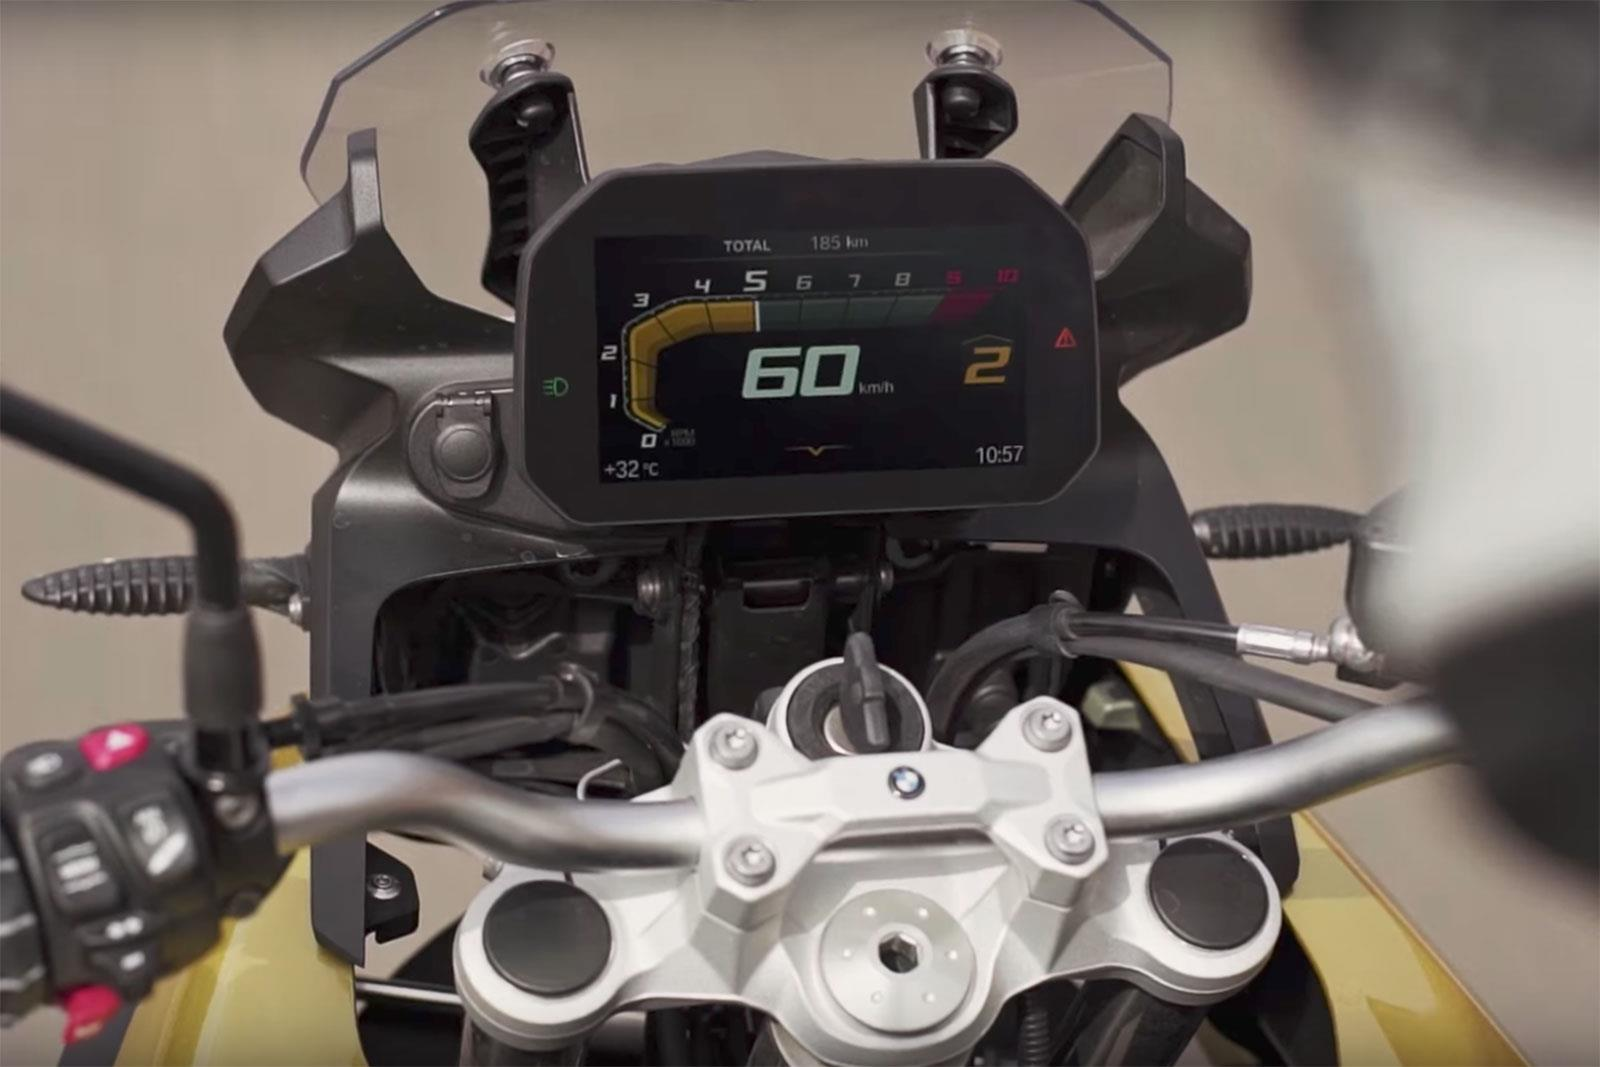 BMW F850GS TFT dash